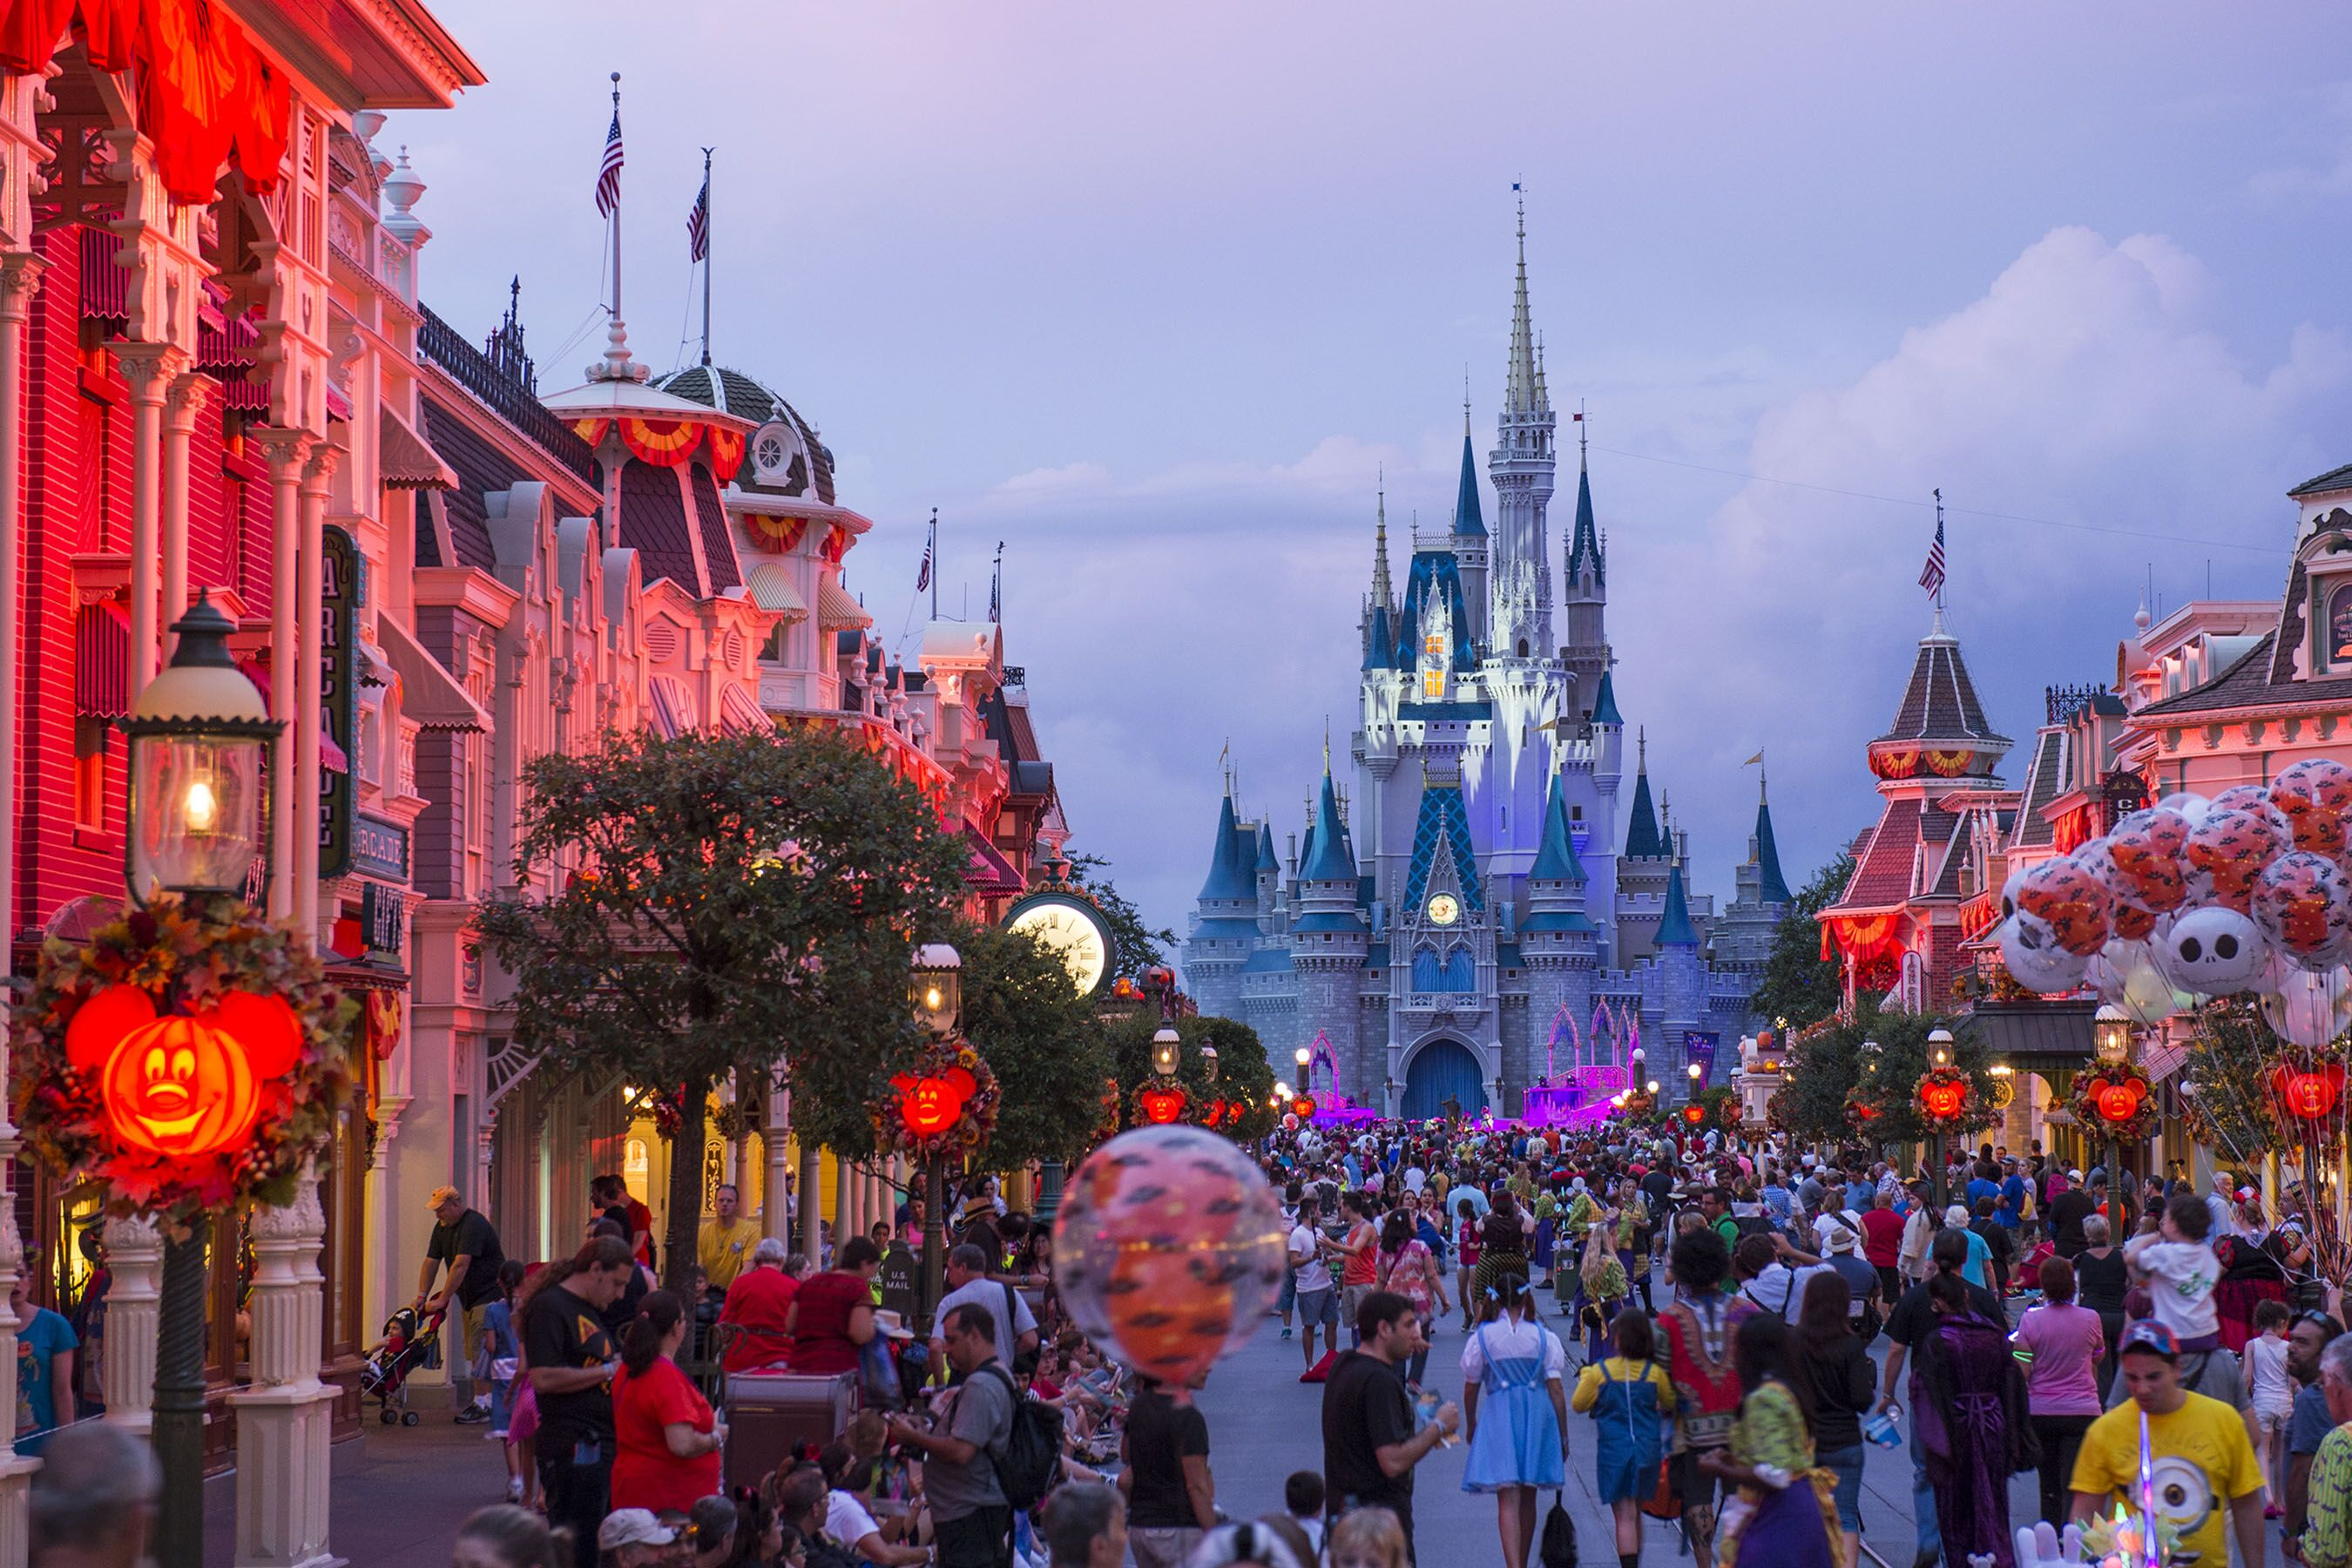 What's new in 2019 for Mickey's Not So Scary Halloween Party